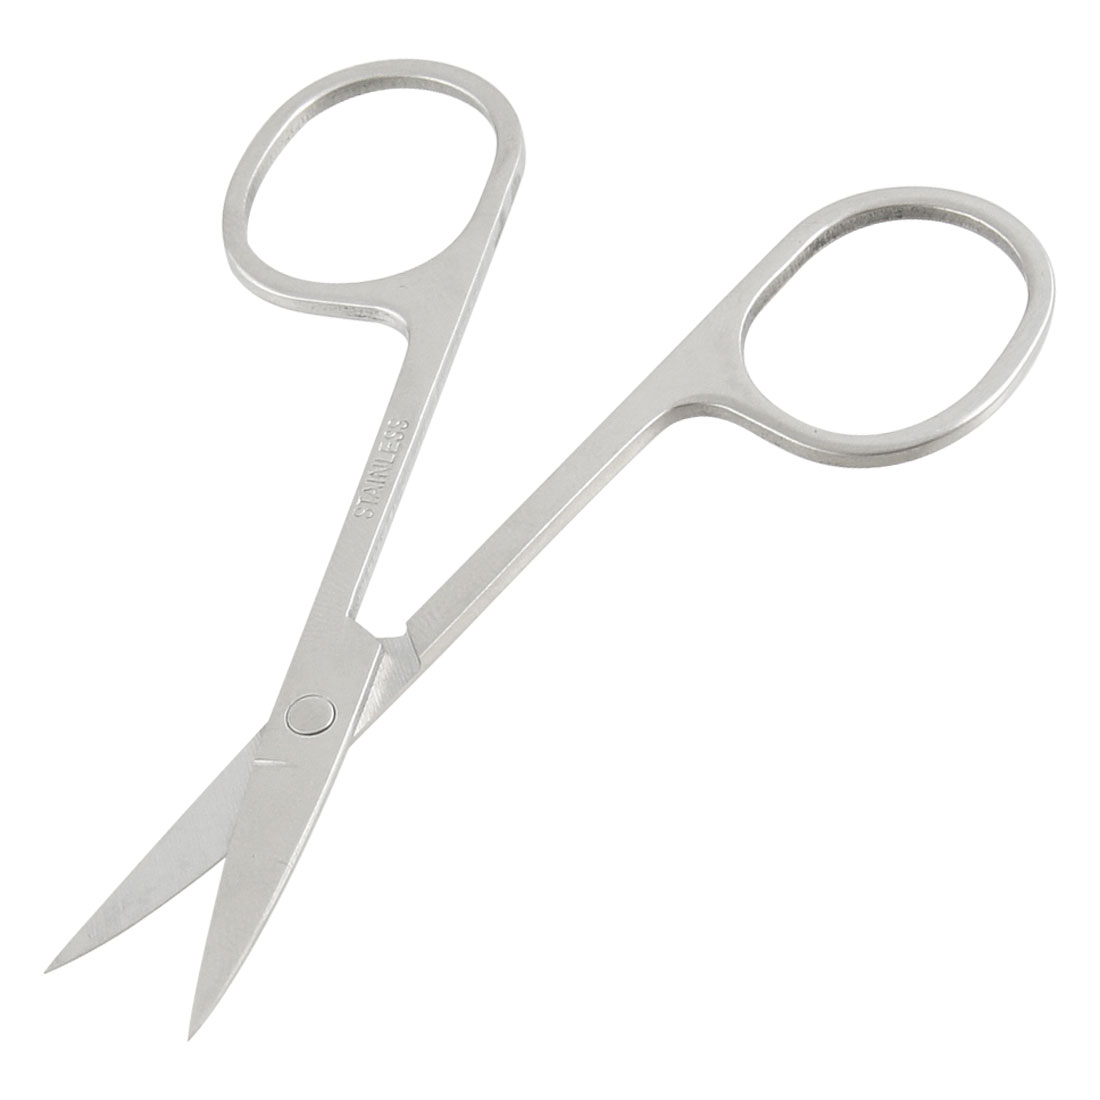 Silver Tone Curved Hair Eyebrow Nail Trim Beauty Scissors 3.4""